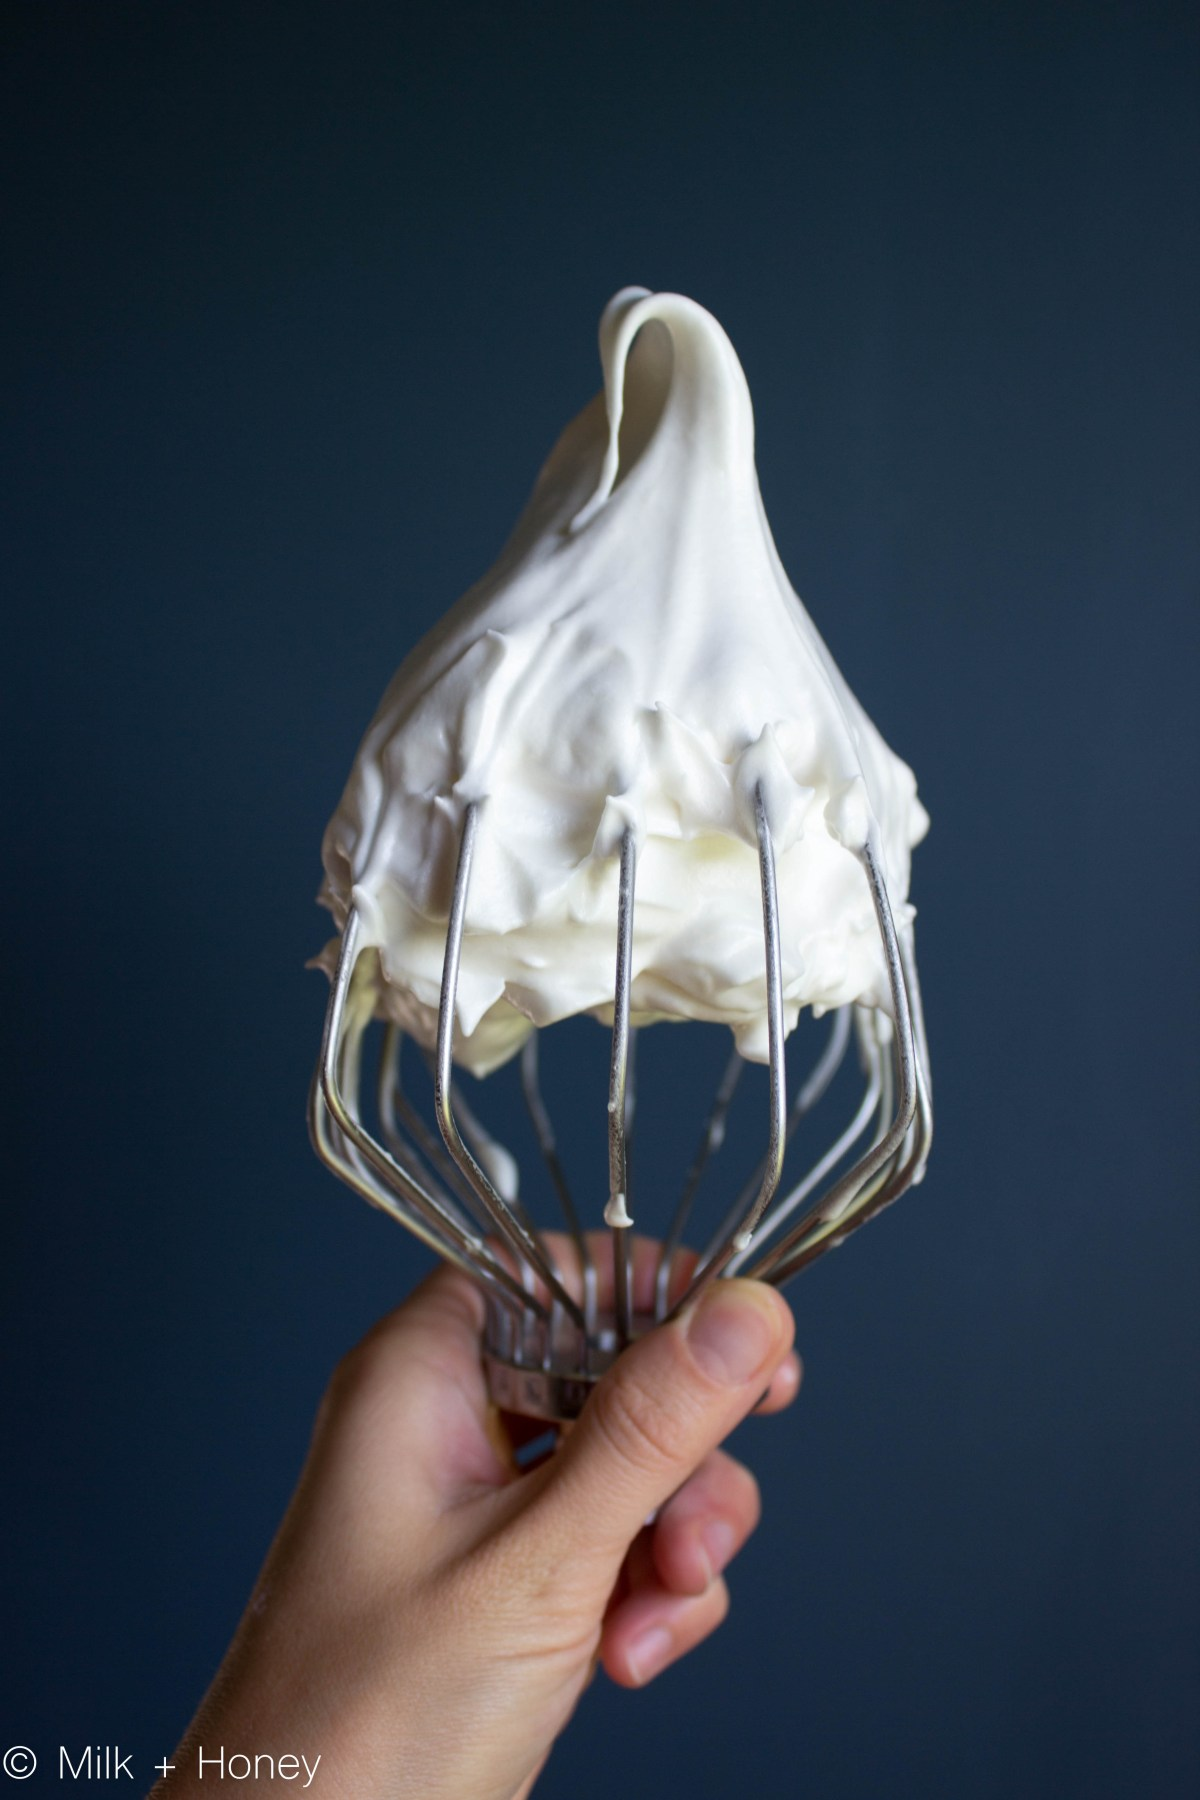 A hand holding a wire whisk, covered in meringue.